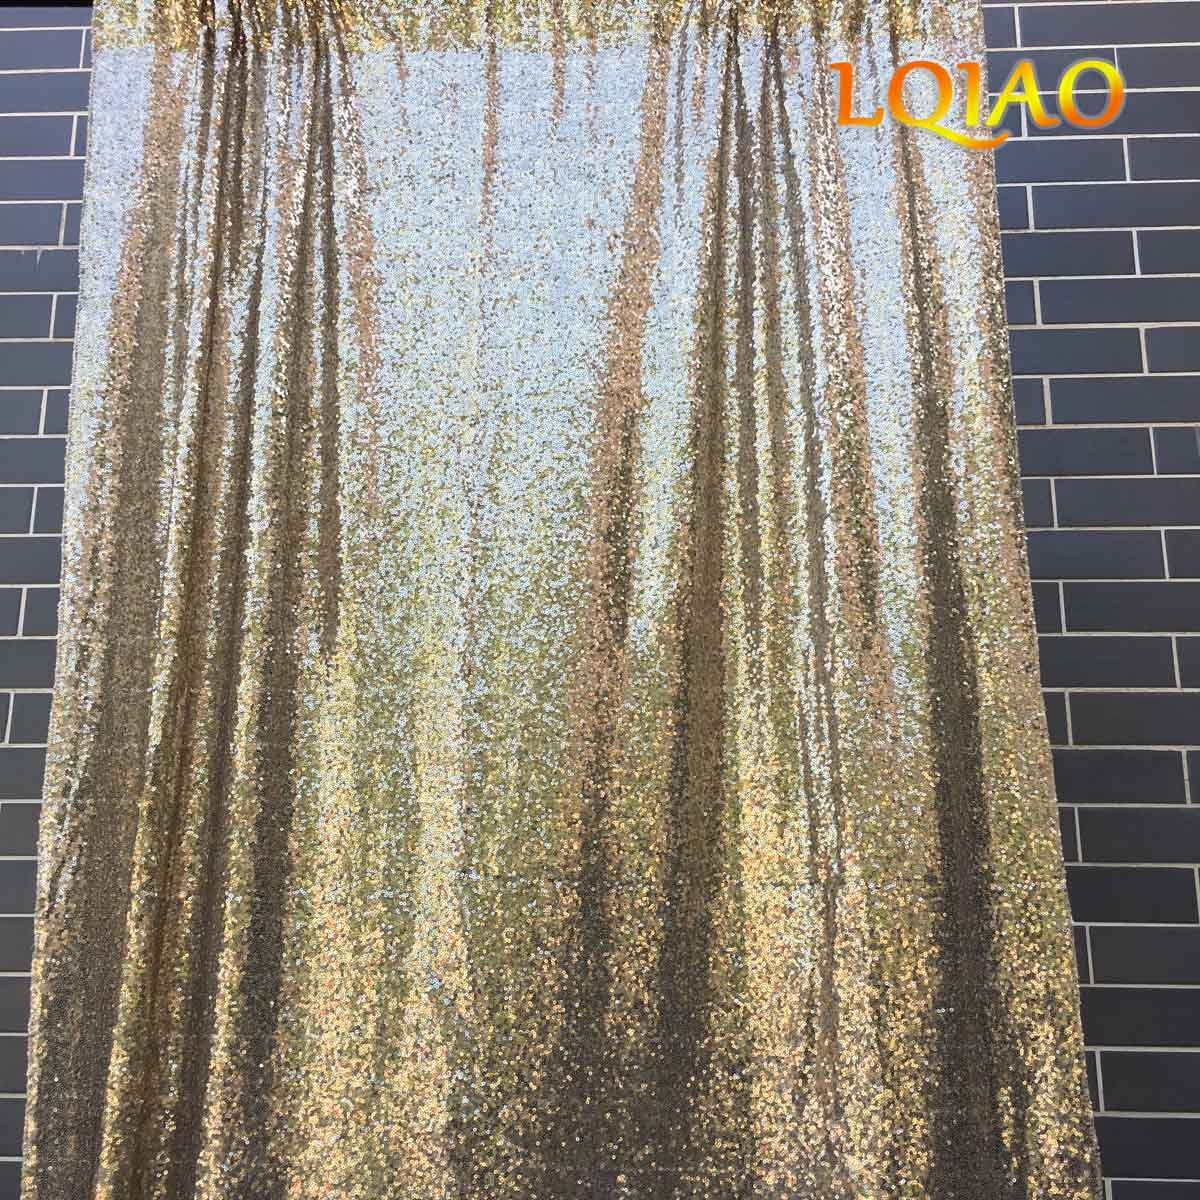 LQIAO 20ftx10ft Light Gold Sequin Backdrop for Wedding Photobooth Backdrop Sequin Curtain Photography Backdrop Decoration by LQIAO